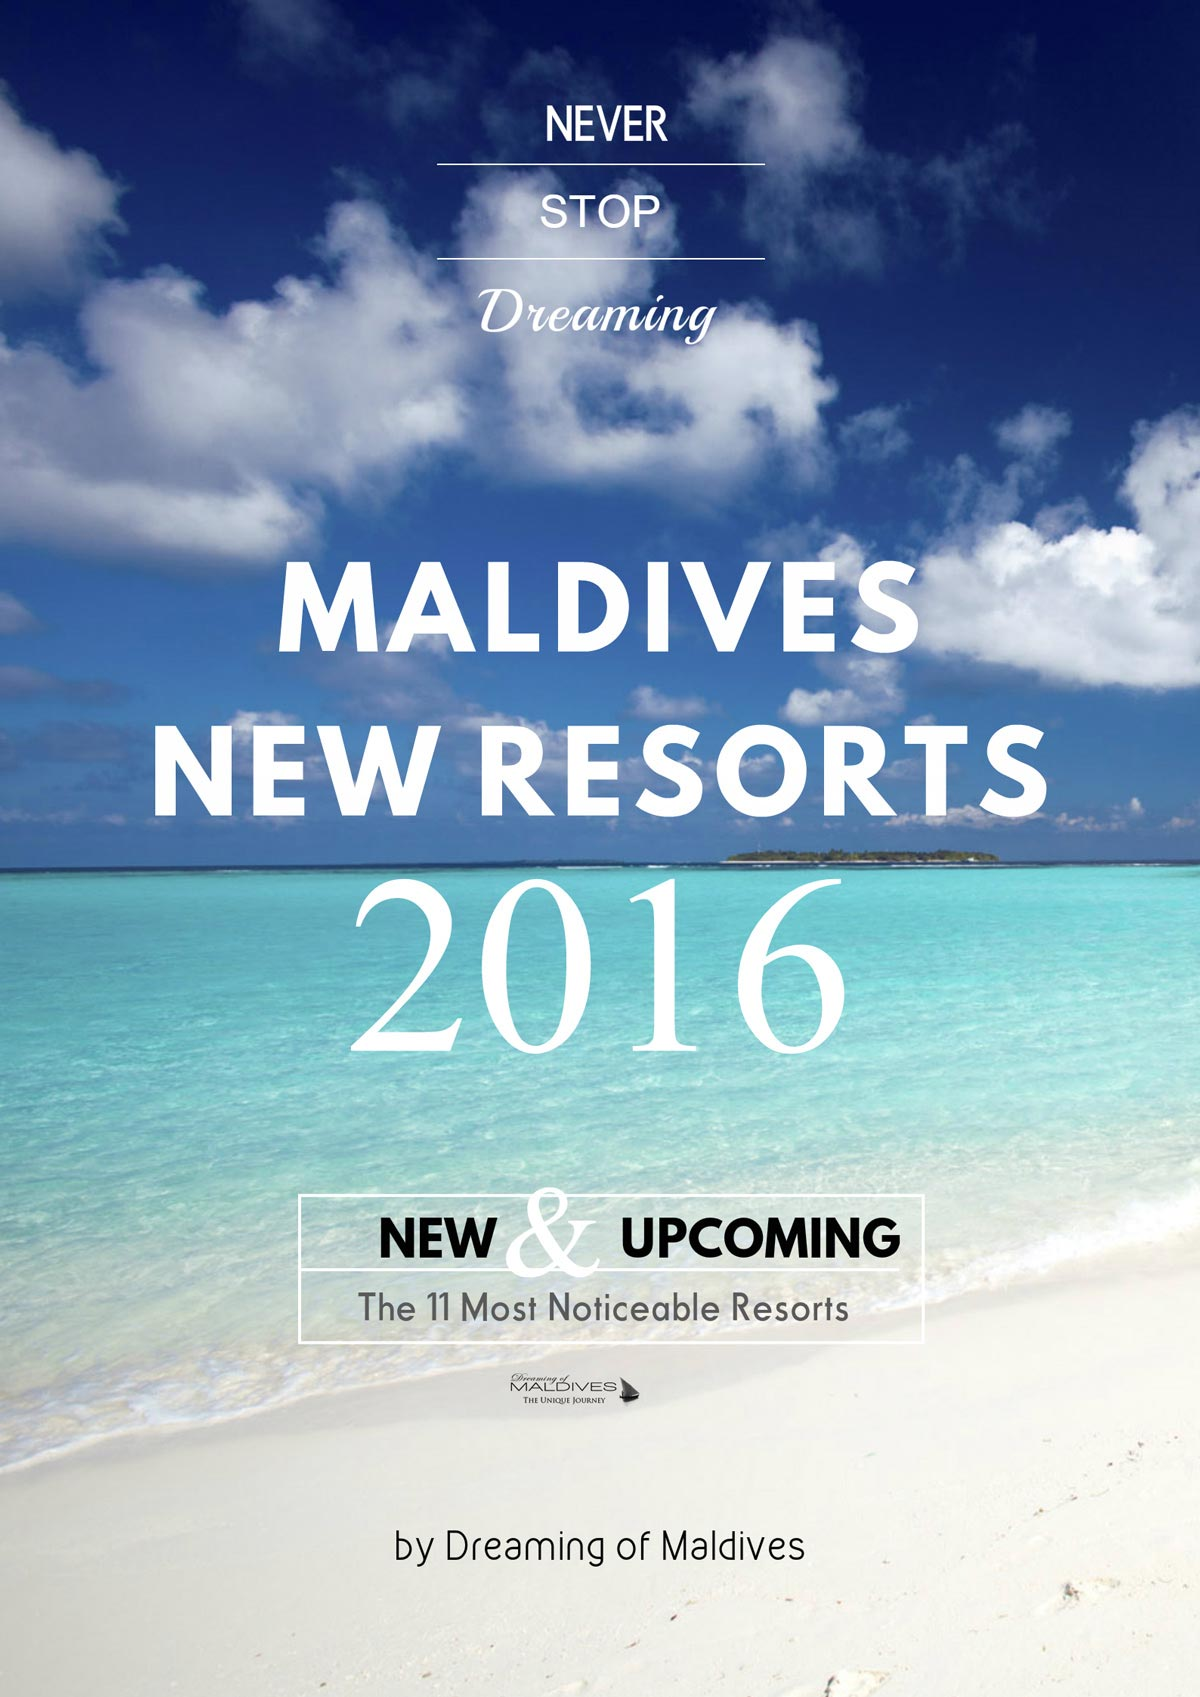 New Opening Resorts in Maldives in 2016